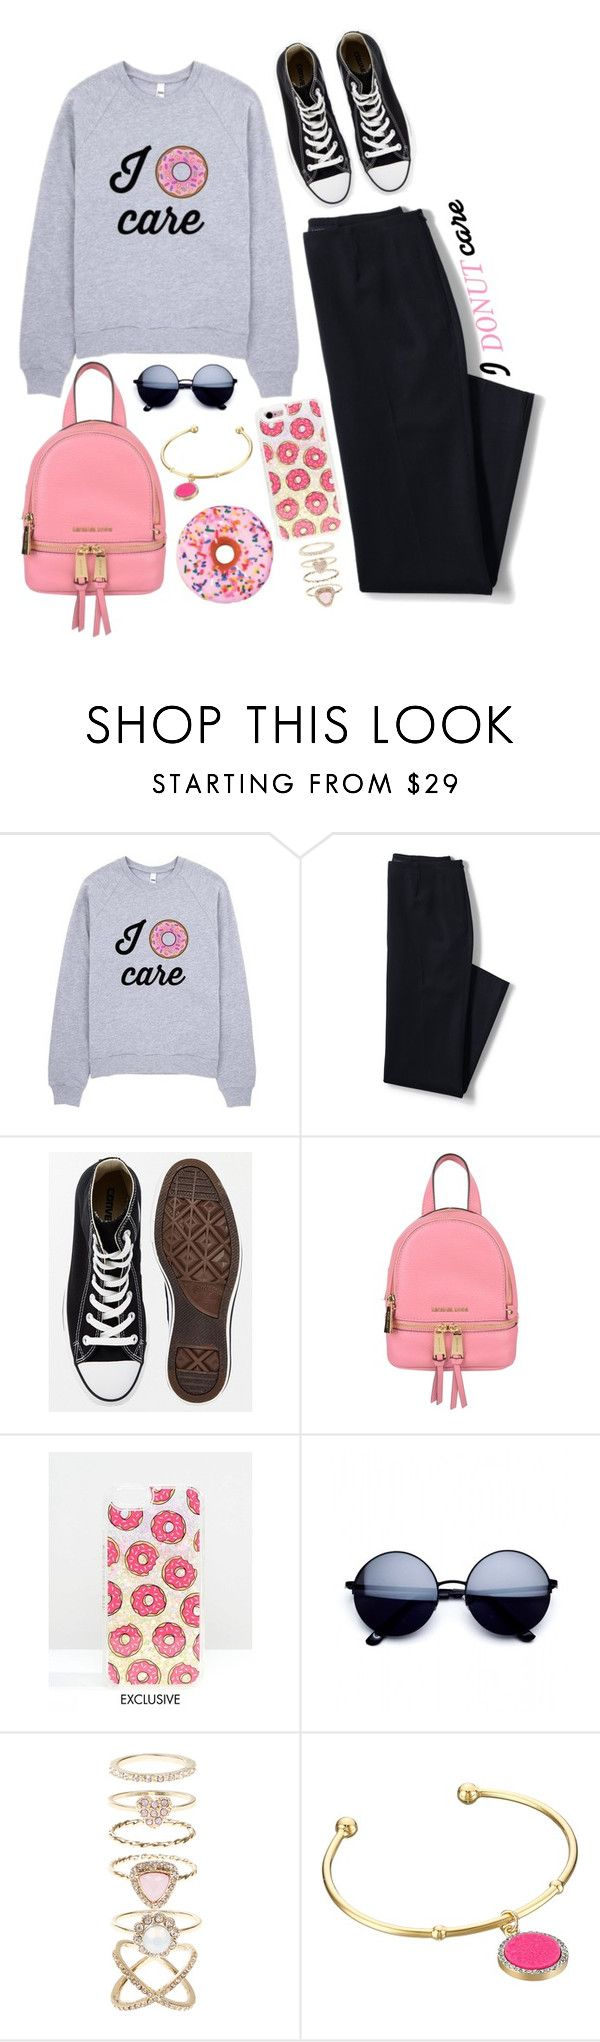 """I don't care"" by elviretta on Polyvore featuring moda, Lands' End, Converse, MICHAEL Michael Kors, Skinnydip, Accessorize e Kate Spade"